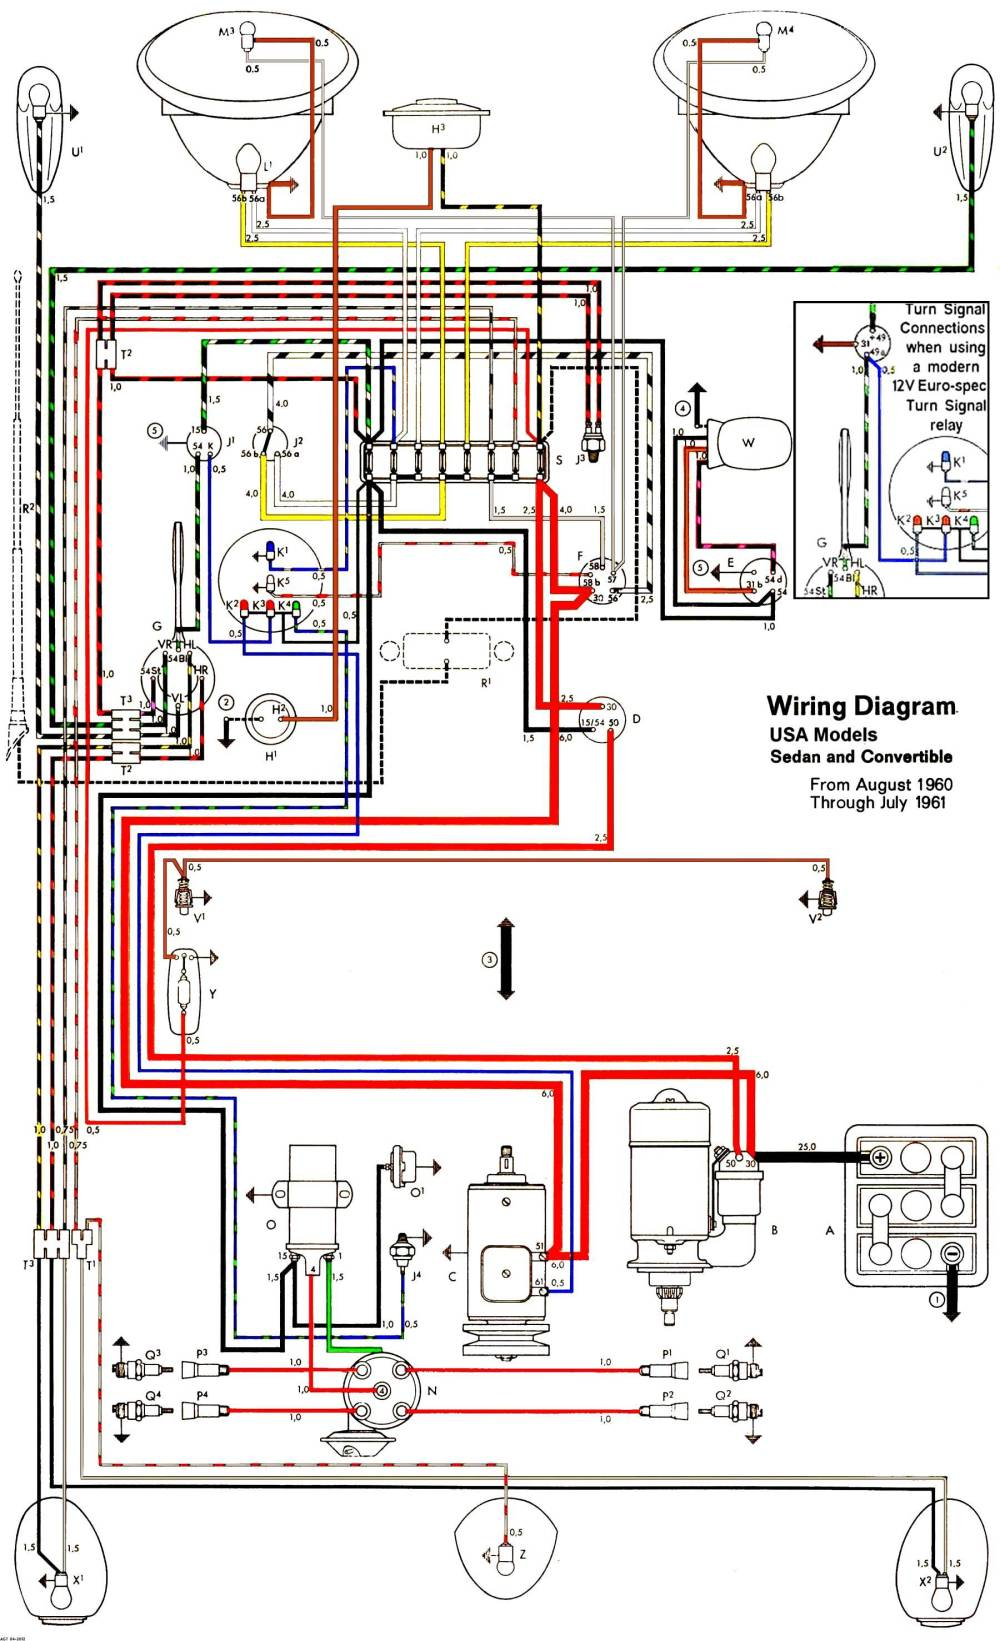 medium resolution of 1970 camaro headlight switch wiring diagram wiring diagram third level 1969chevellewiringschematic thread headlight switch 70 camaro